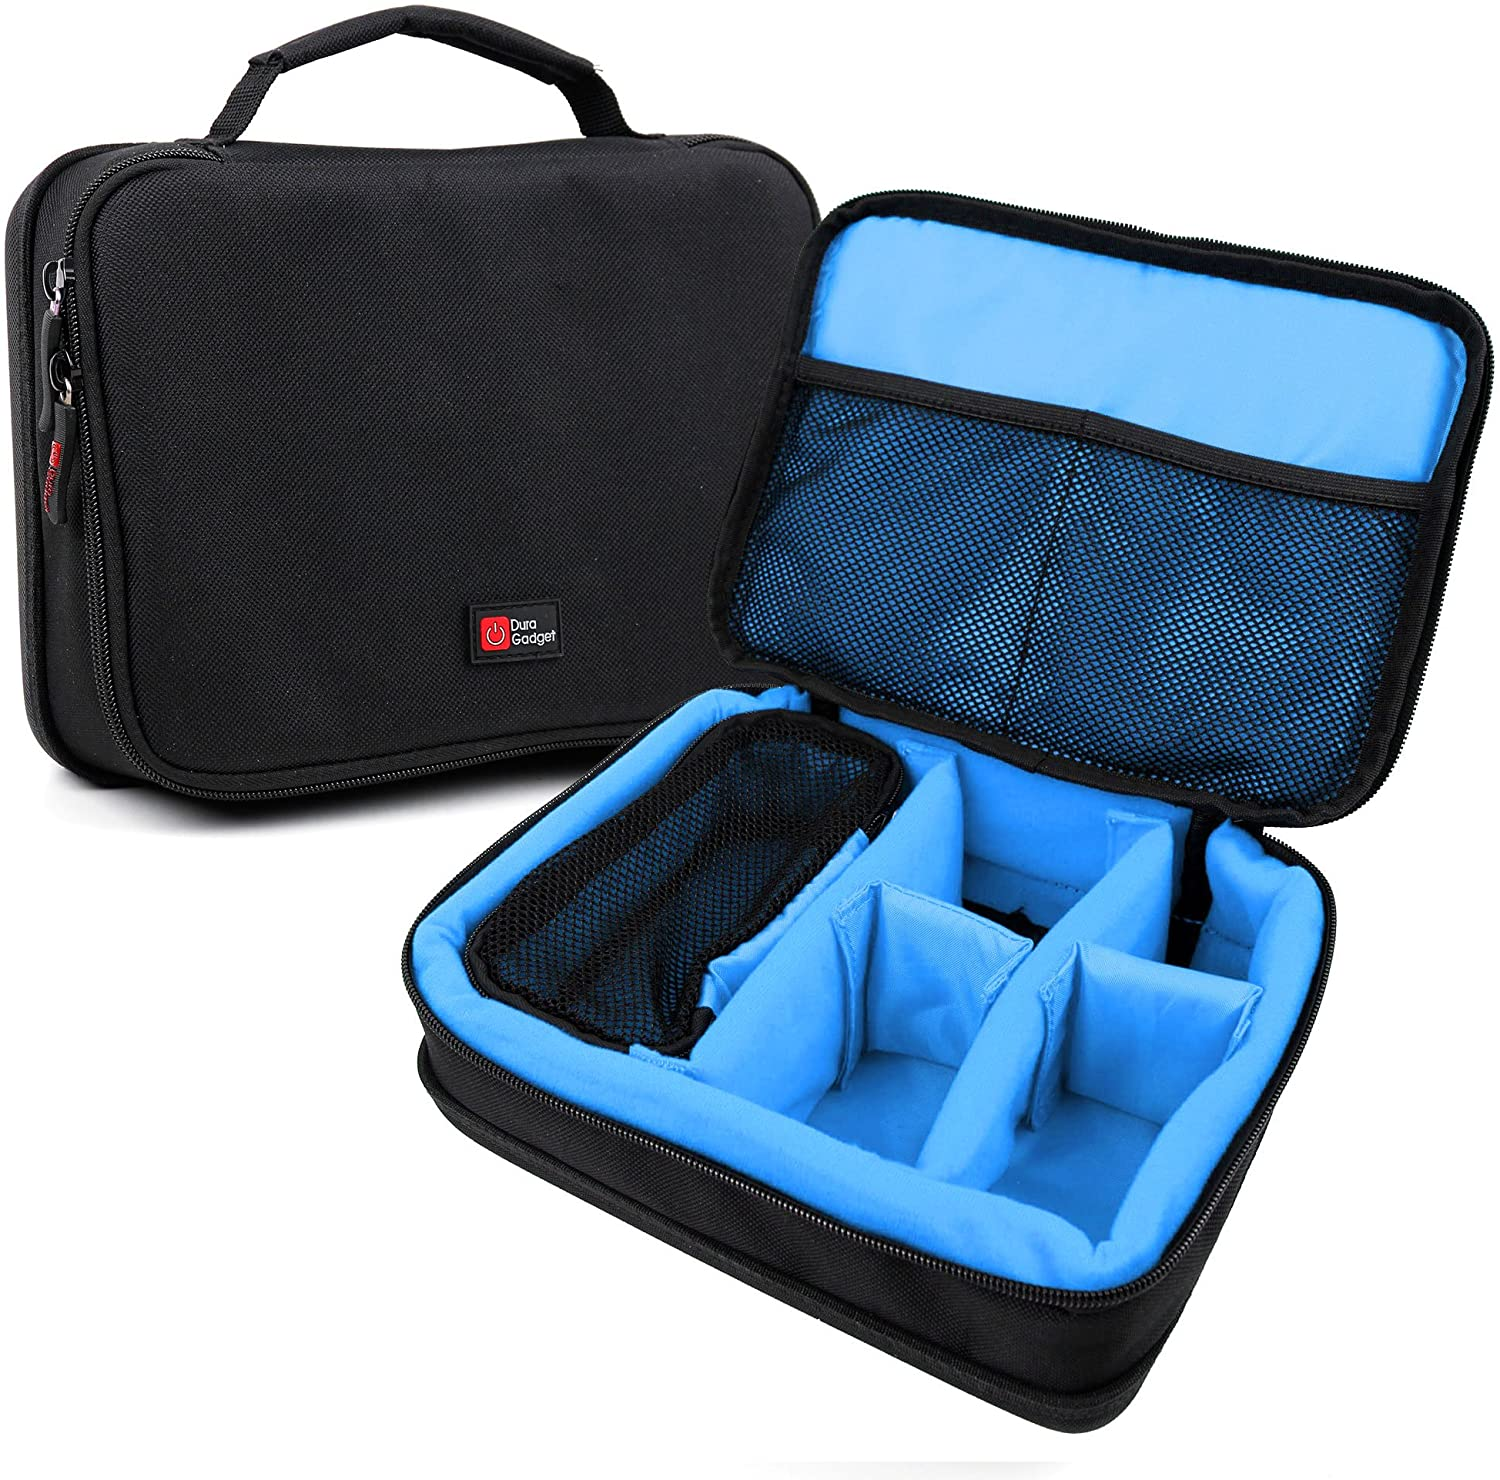 DURAGADGET Protective Black & Blue EVA Carry Case - Compatible with Contour Roam 3